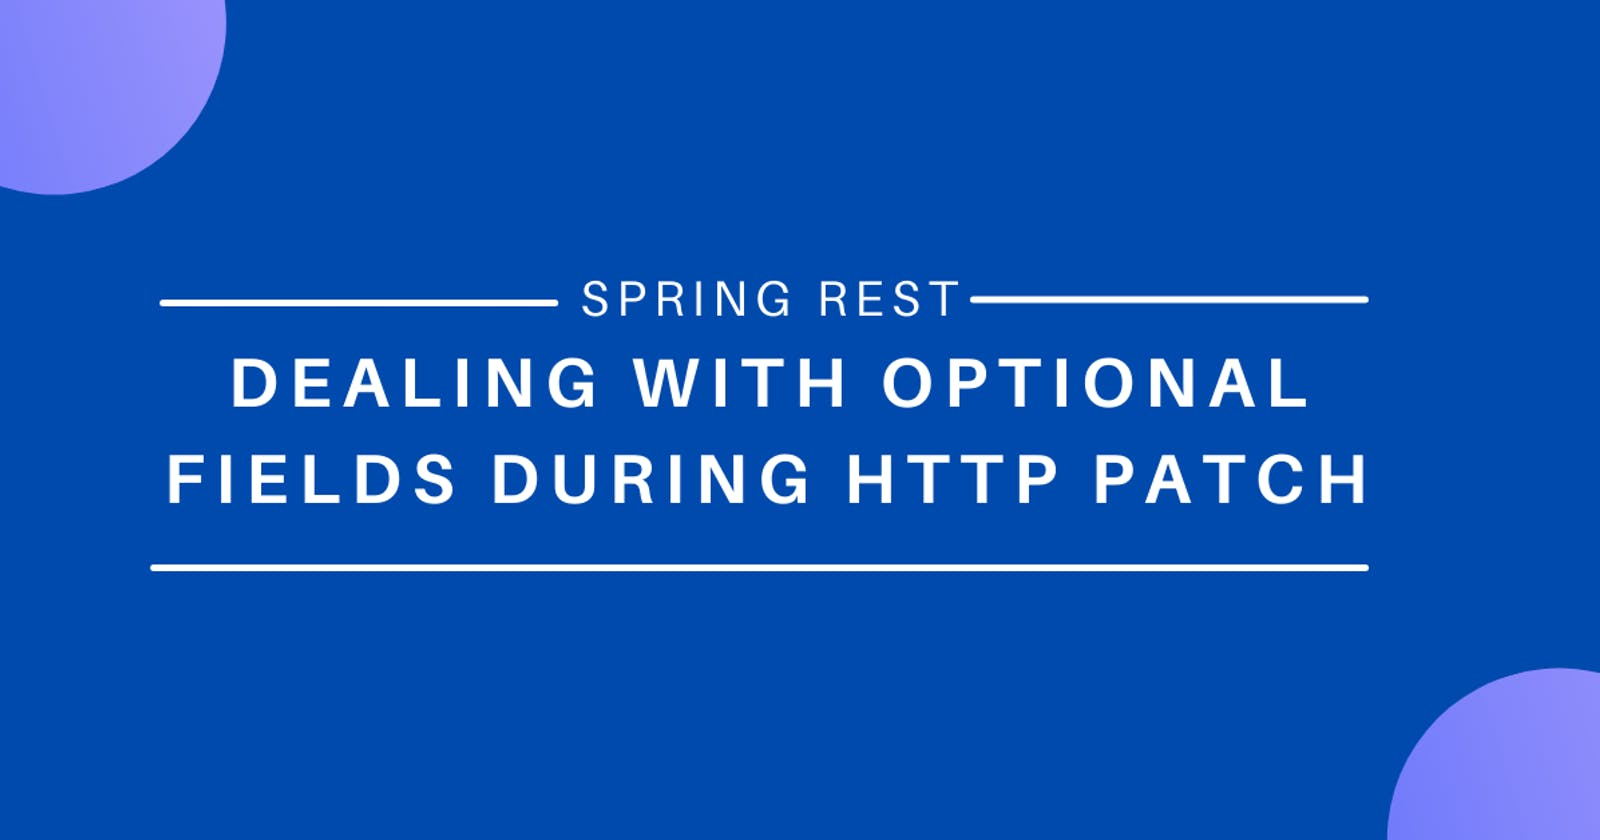 Spring Rest: Dealing with Optional Fields during HTTP PATCH